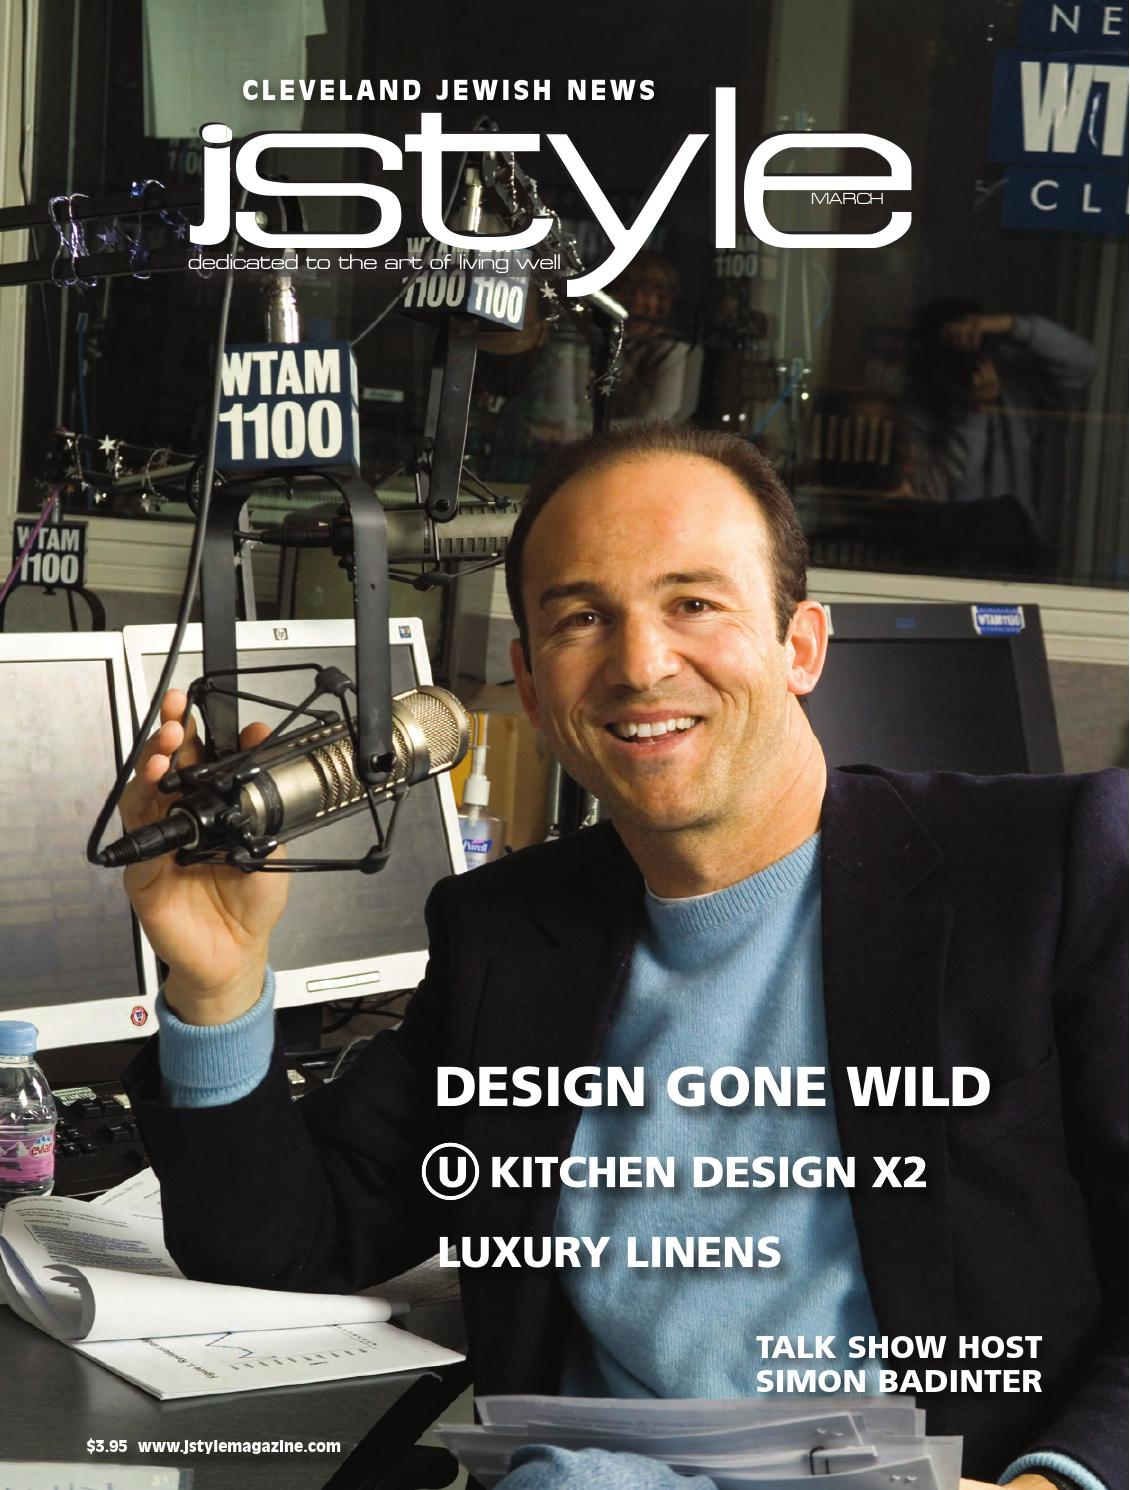 94e8f8267dc64d Jstyle March 2008 by Cleveland Jewish Publication Company - issuu